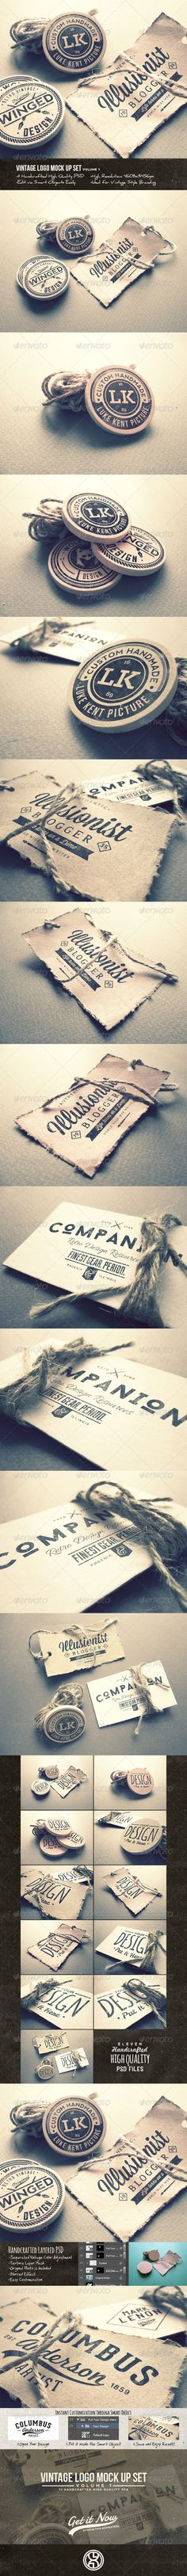 Use these mock up with your vintage logos and badges, it'll bring out a strong handcrafted branding presence and vintage impression of your brand and products • Available here → http://graphicriver.net/item/vintage-logo-mock-up-set-volume-1/8107590?s_rank=134&ref=pxcr